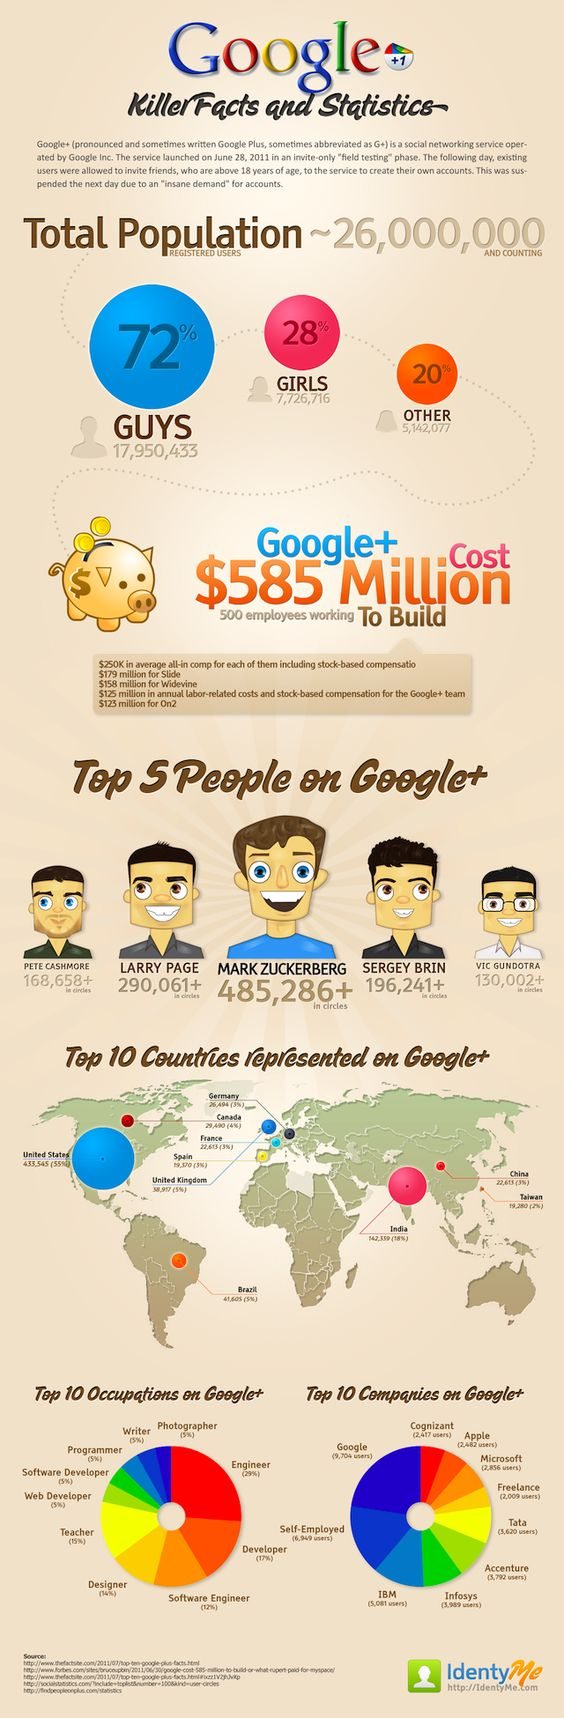 Google+ facts and stats